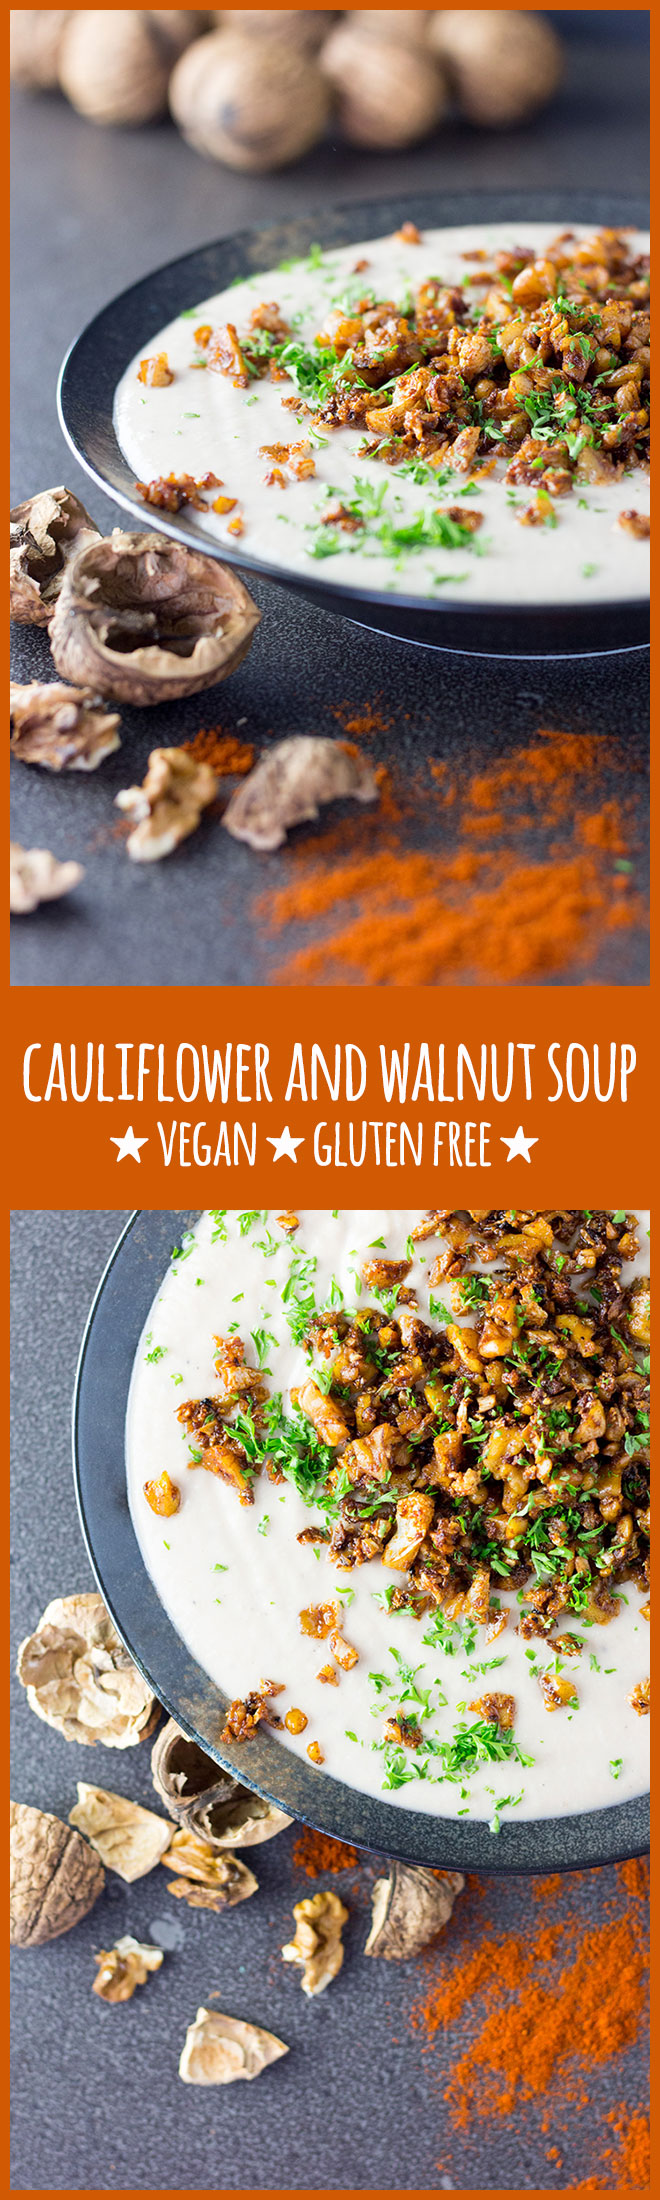 A satisfyingly creamy and earthy cauliflower and walnut soup topped with smoky, crispy crumbs.